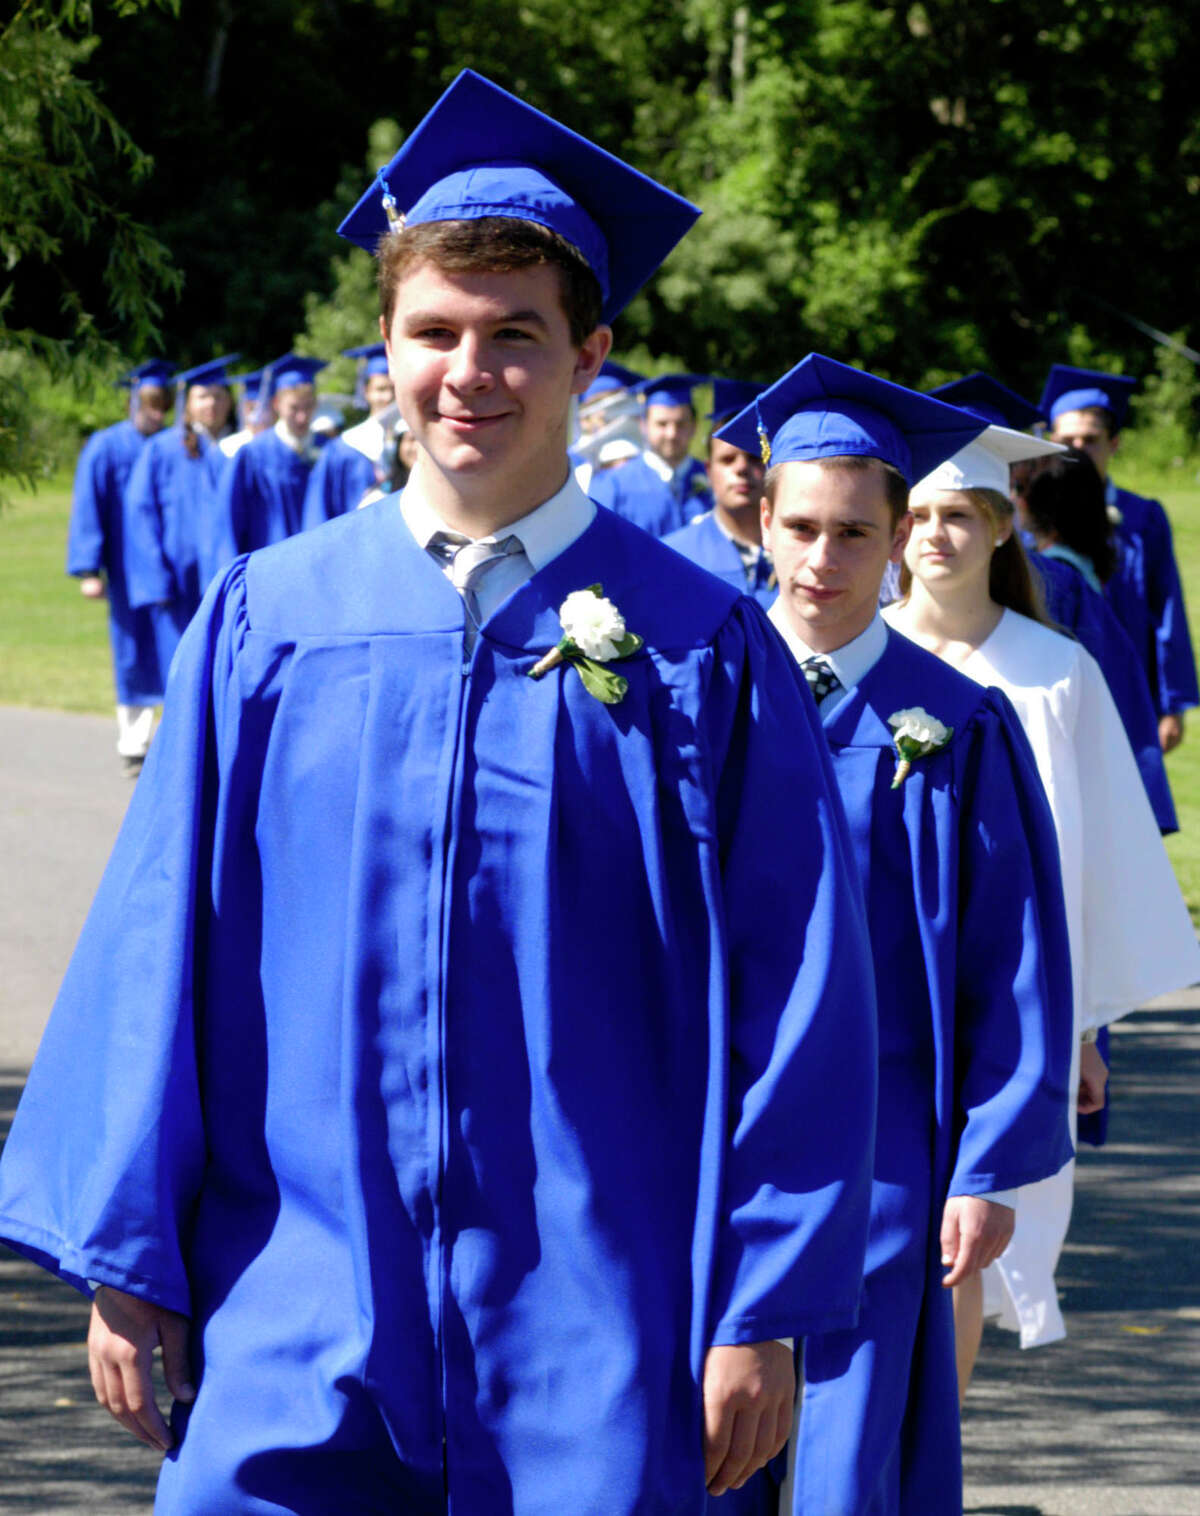 Kyle Lundie, left, Shaun Lynch and classmates march in the processional for the Shepaug Valley High School Class of 2012 graduation ceremony, June 16, 2012, in Washington.